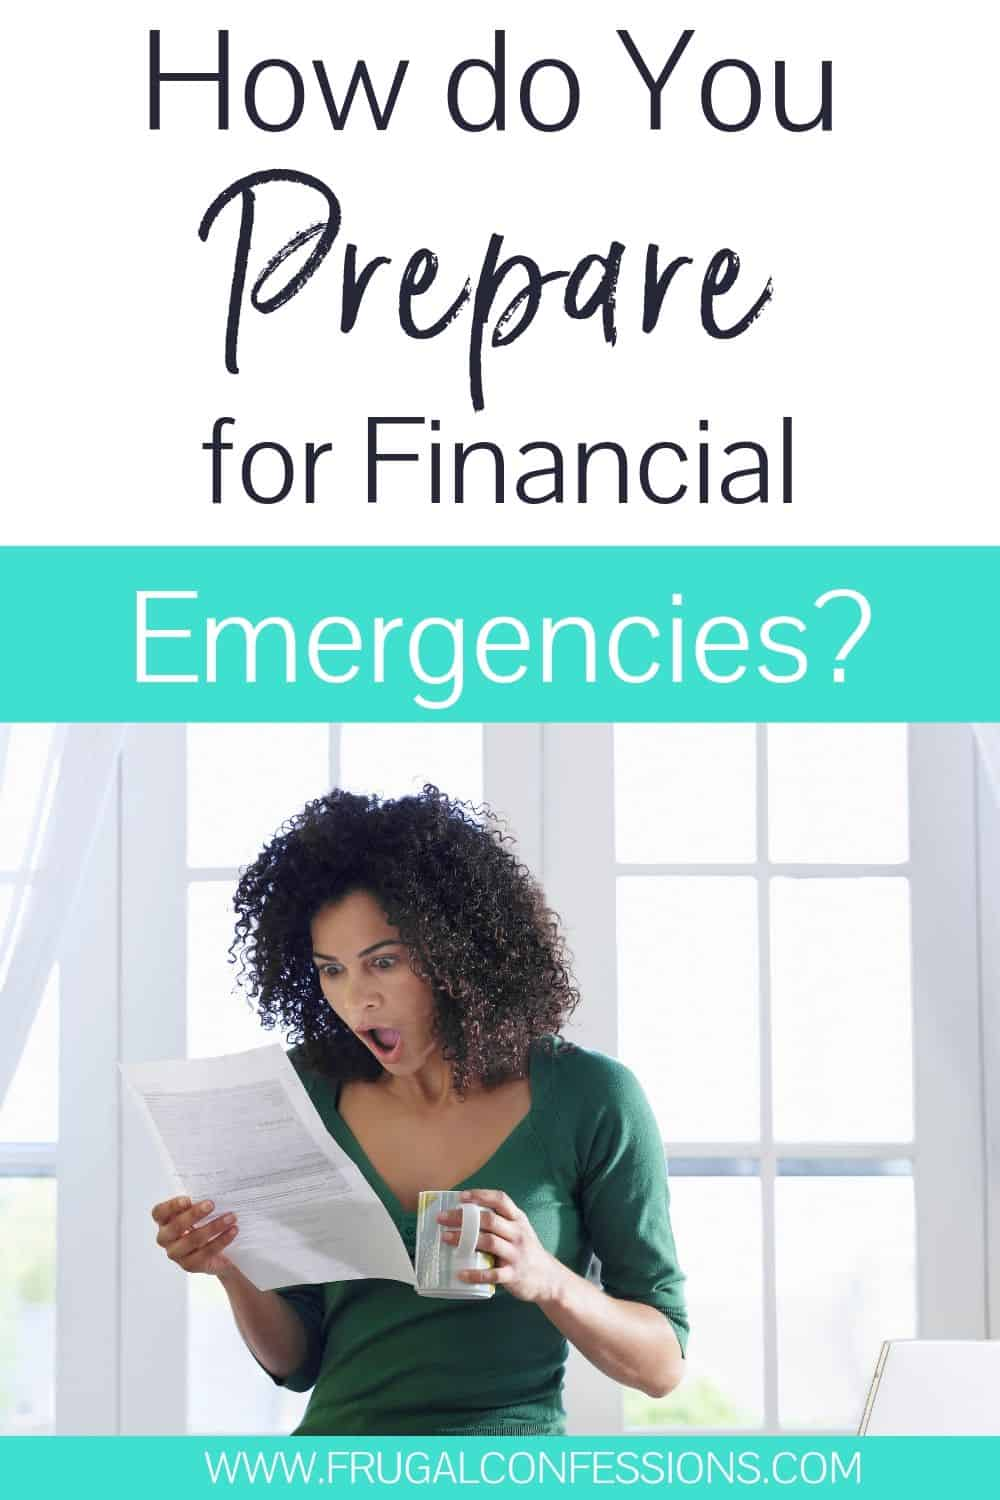 "woman looking shocked as she sees bill in hand, text overlay ""how do you prepare for financial emergencies?"""